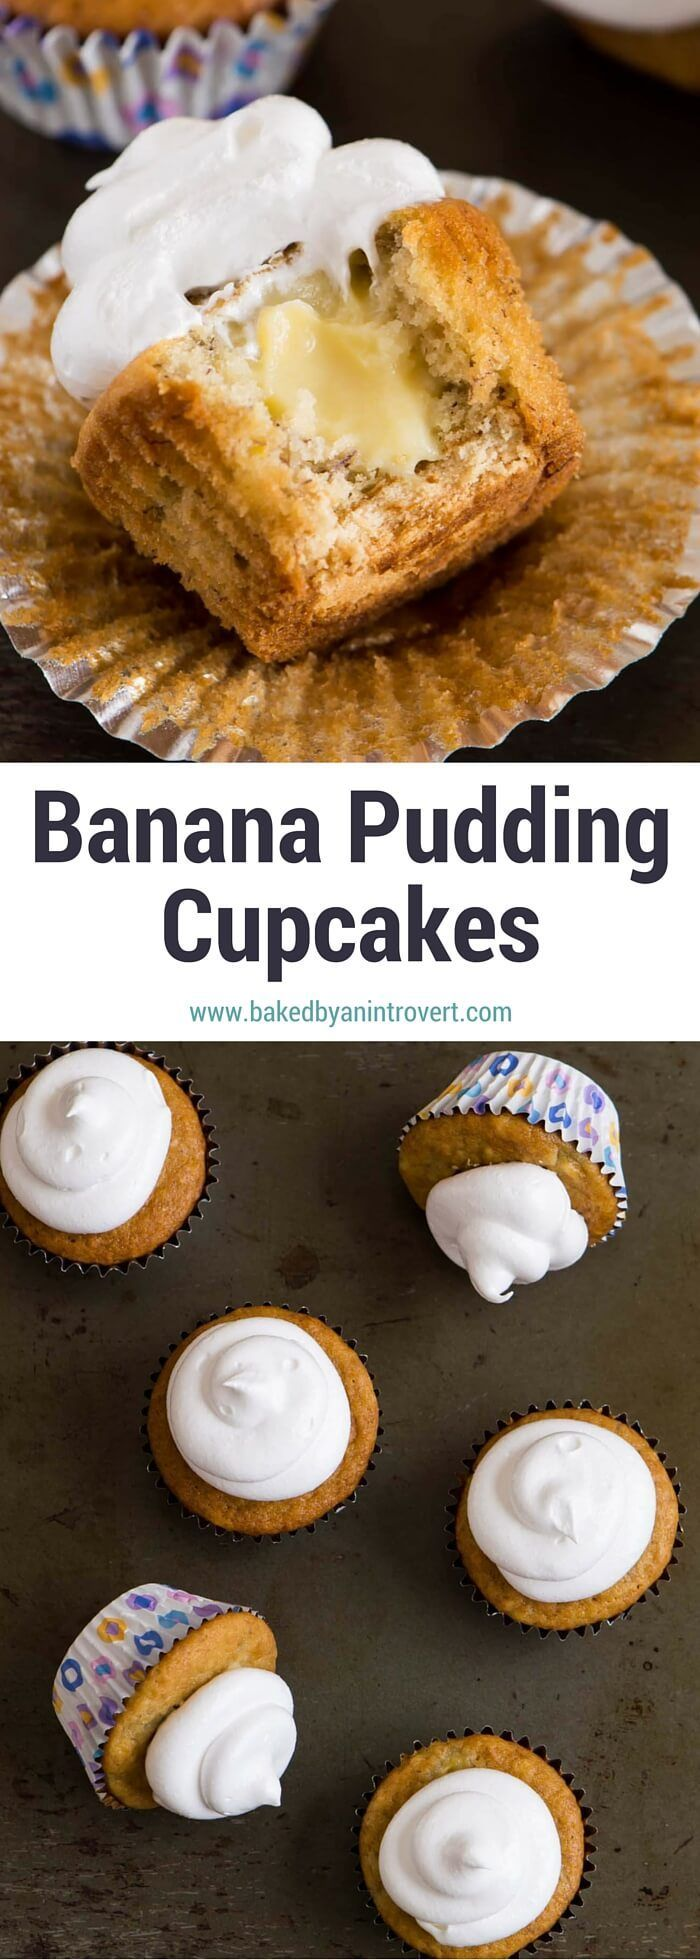 In an ode to banana pudding, a southern classic, these Banana Pudding Cupcakes feature a banana flavored cupcake with a vanilla wafer on the bottom, filled with homemade vanilla pudding, and topped with marshmallowy 7-minute frosting. These cupcakes taste just like an old-fashioned banana pudding dessert made from scratch. If you are looking to bake something new and exciting, this cupcake recipe is the one for you! #ad #BiteSizedBitsOfJoy